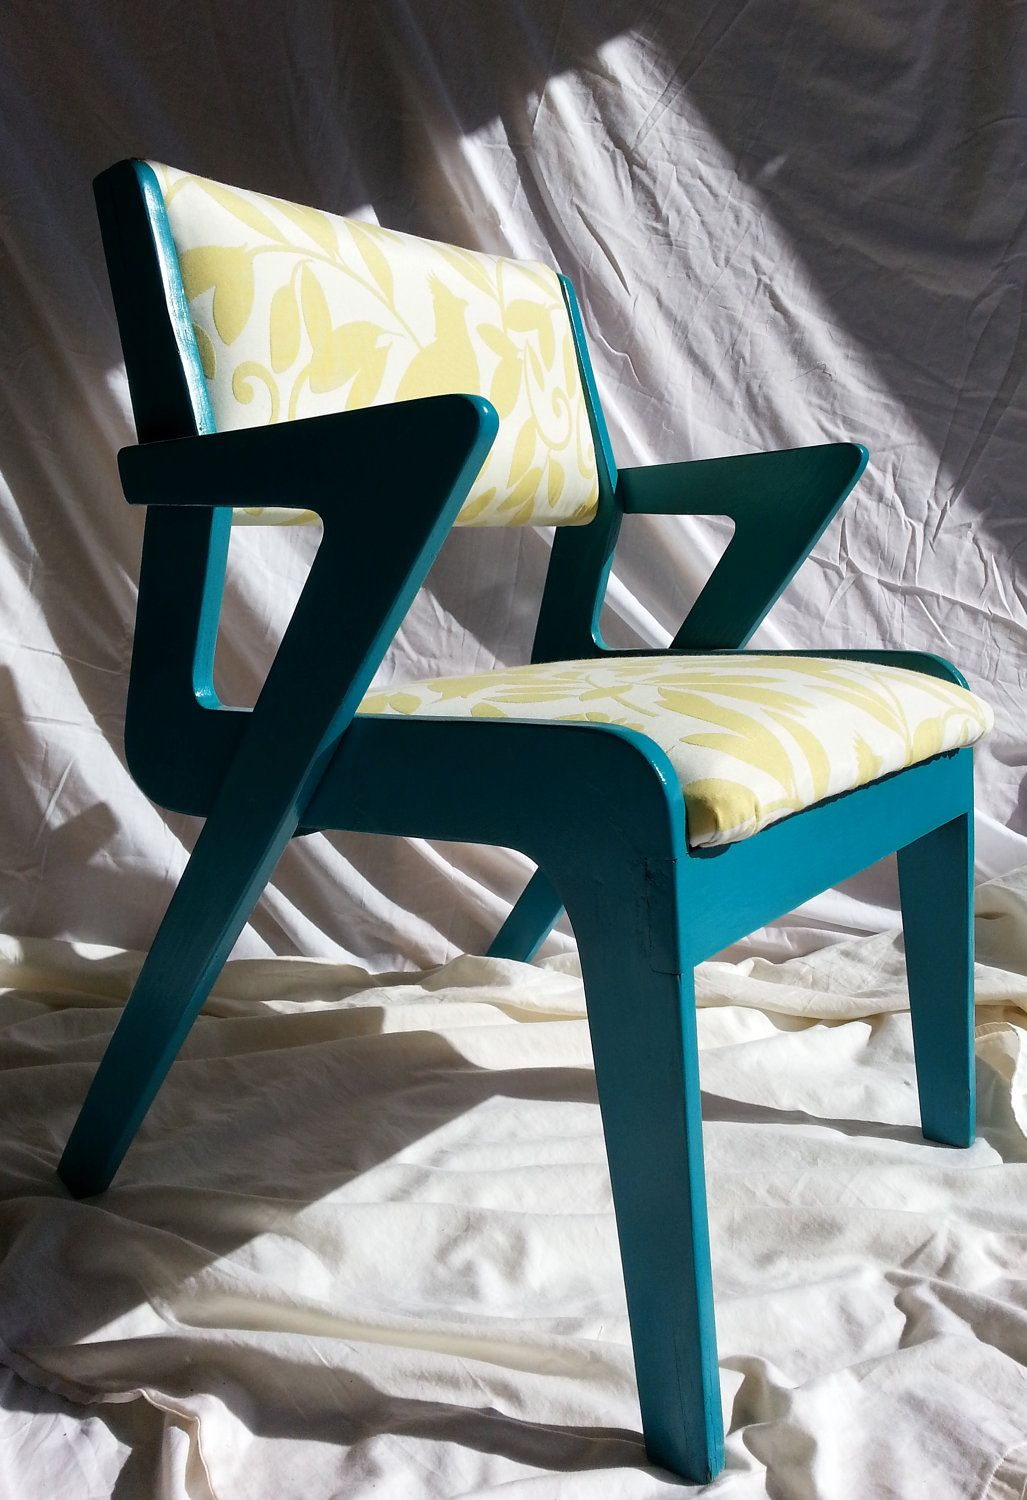 Vintage Refurbished Mid Century Modern Turquoise/Yellow Upholstered Chair. $200.00, via Etsy.